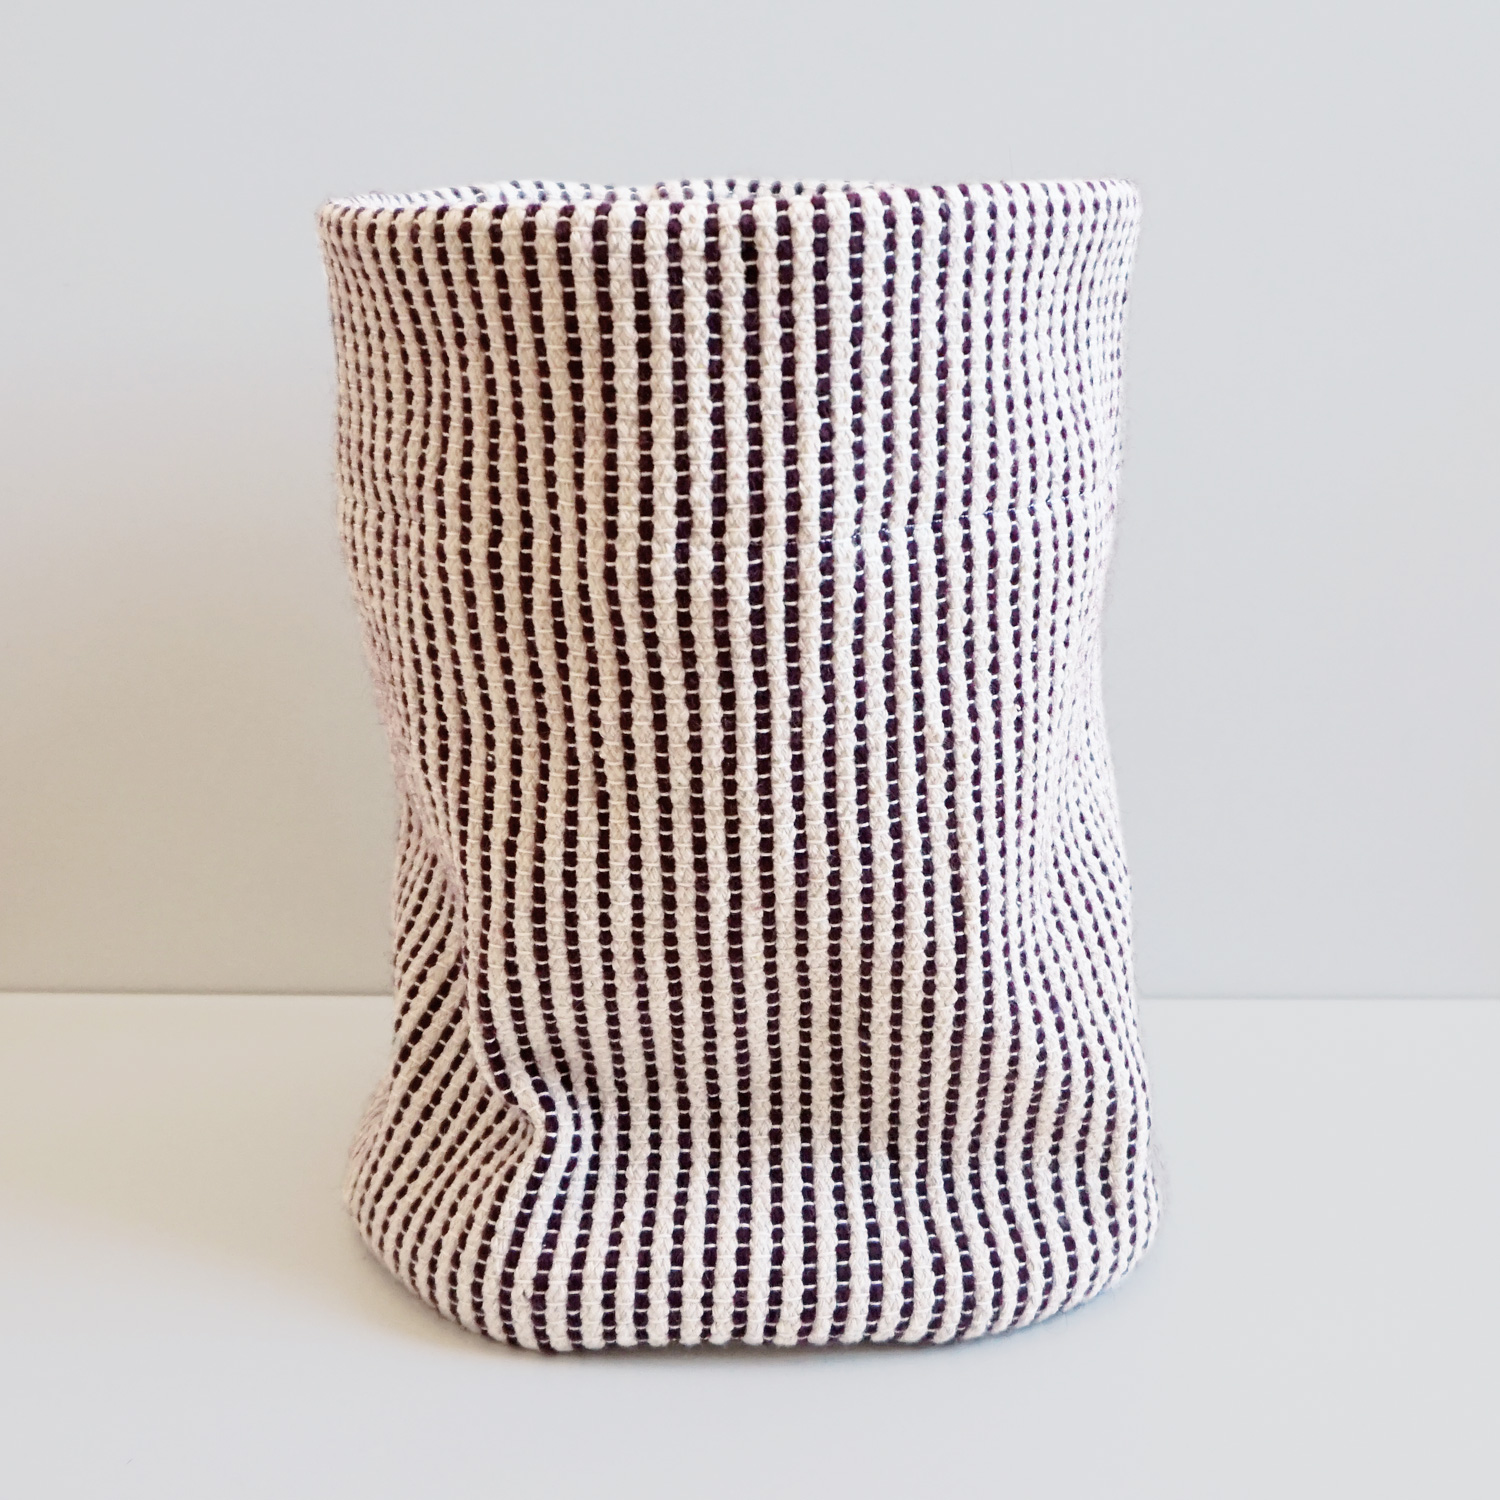 A sturdy beige and burgundy woven basket to hold your yarn stash, kid's toys or a big house plant.